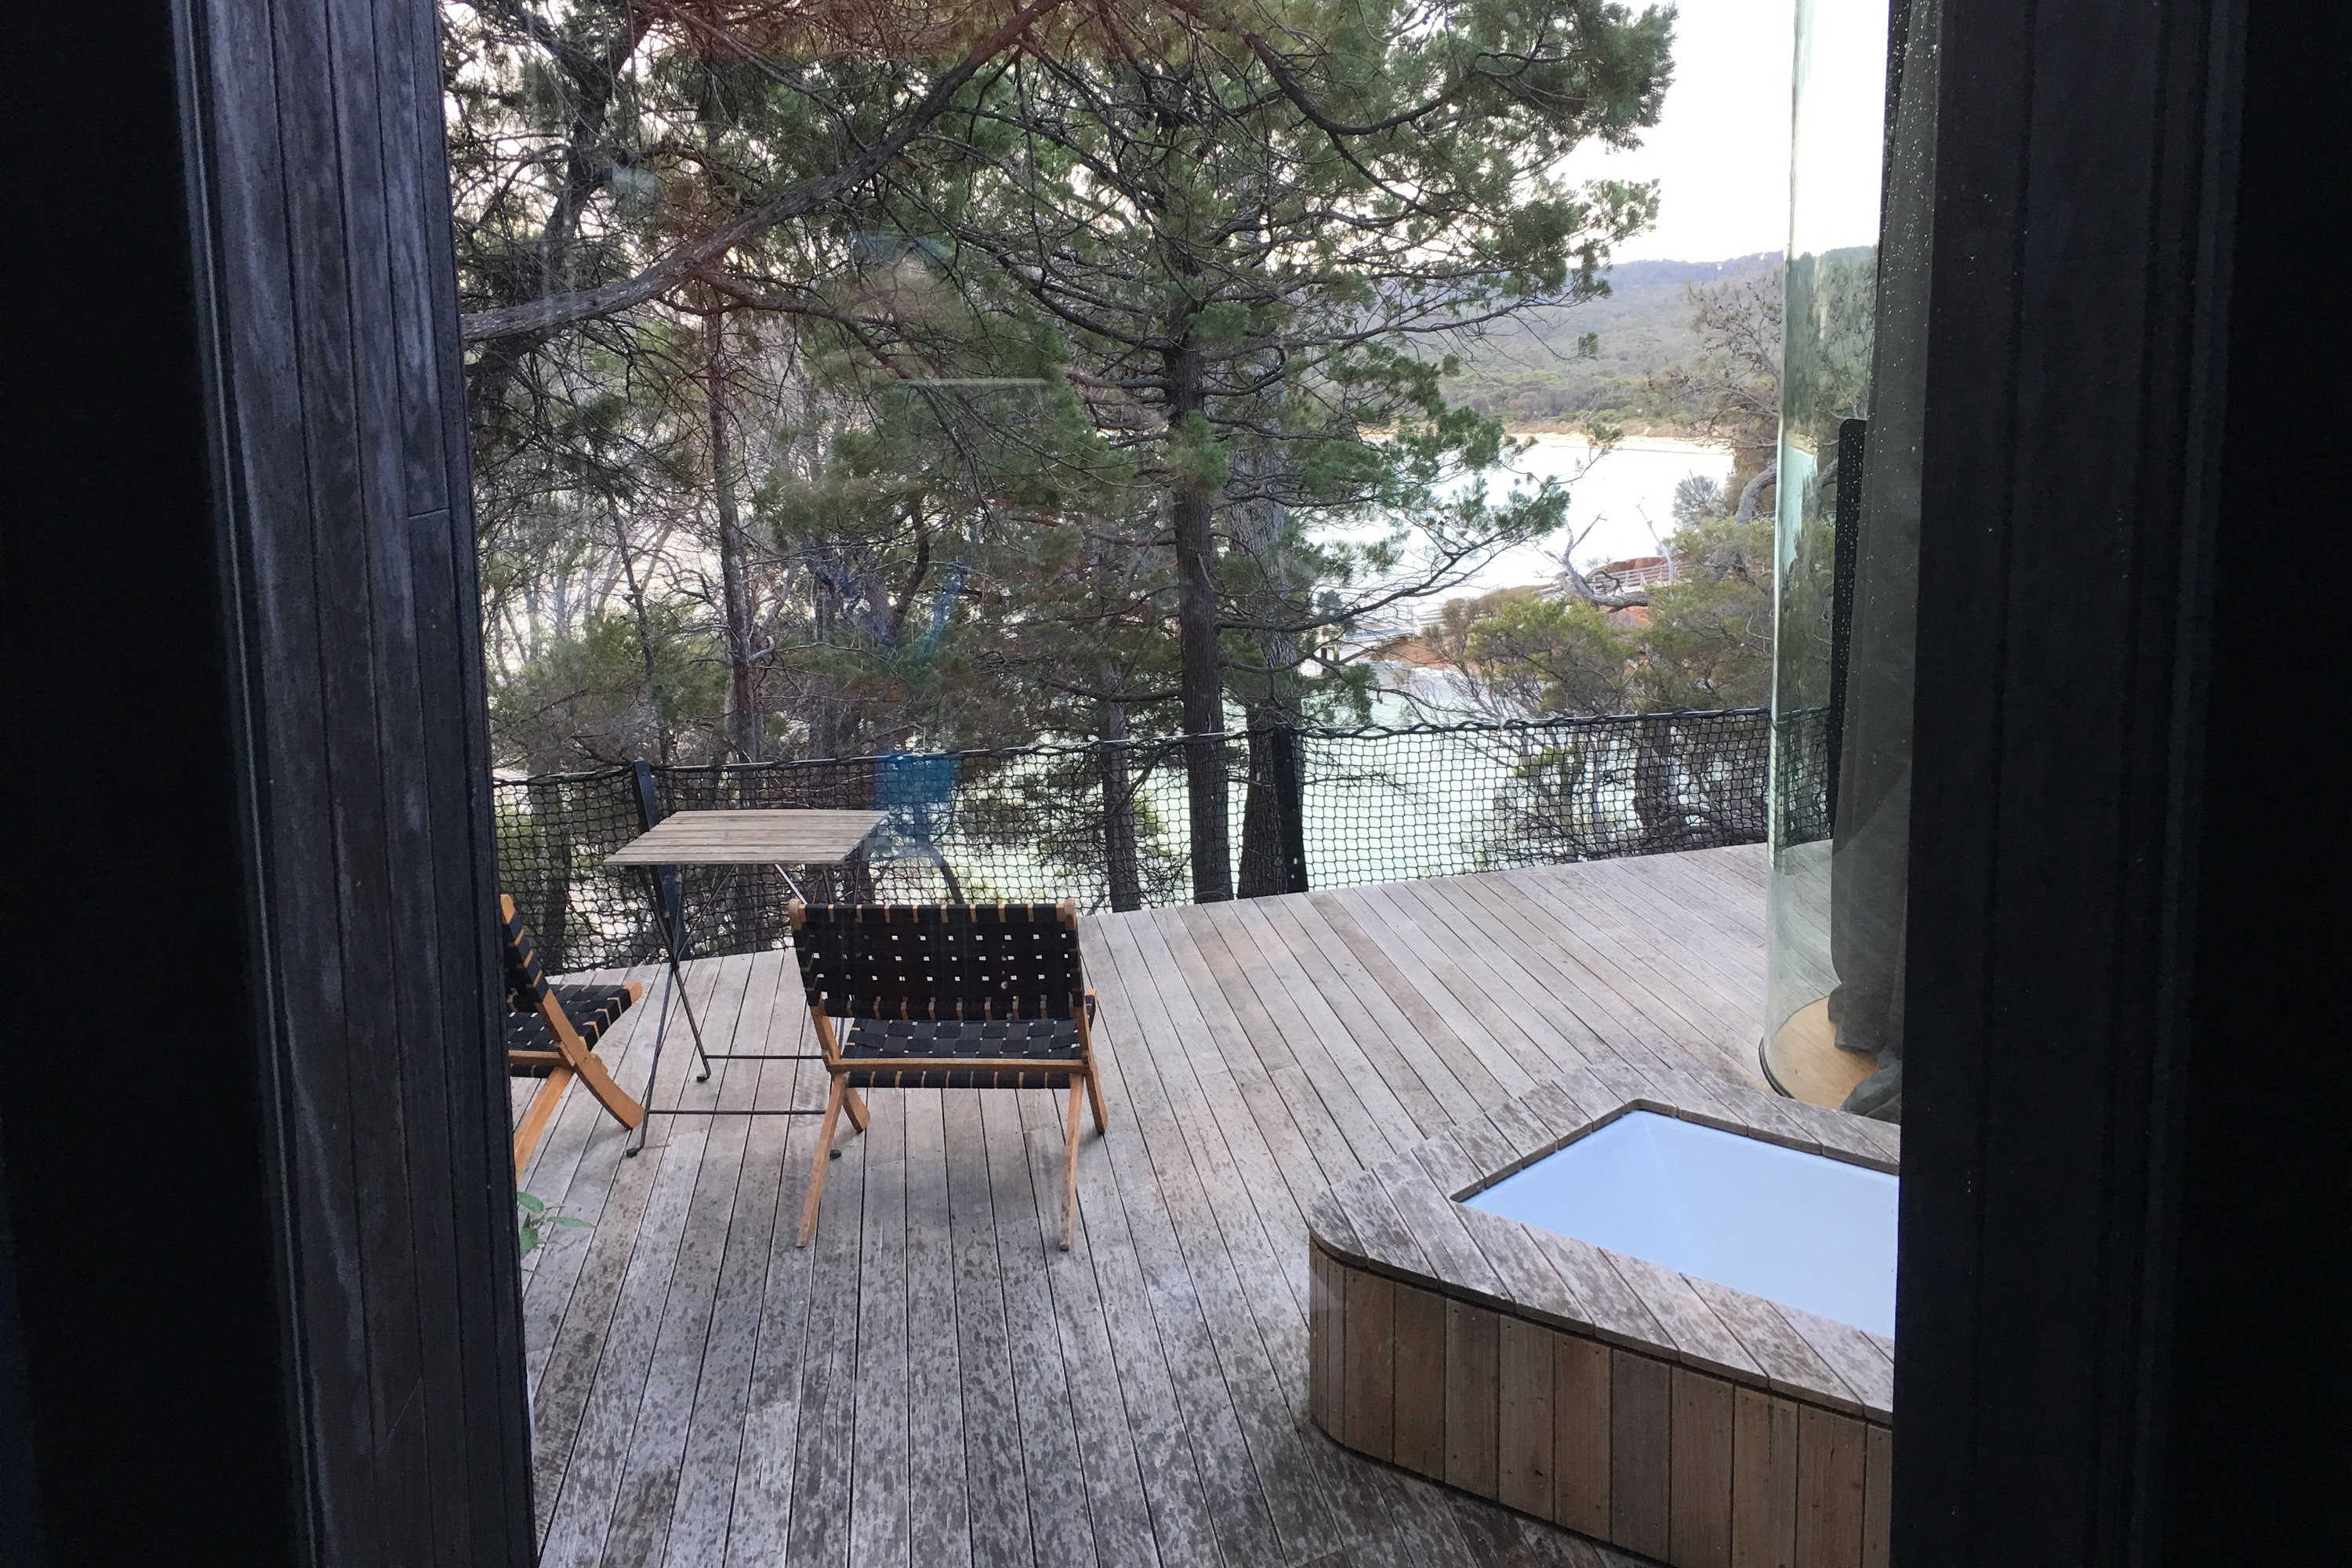 2019 Subaru Tasmania drive freycinet Lodge room view